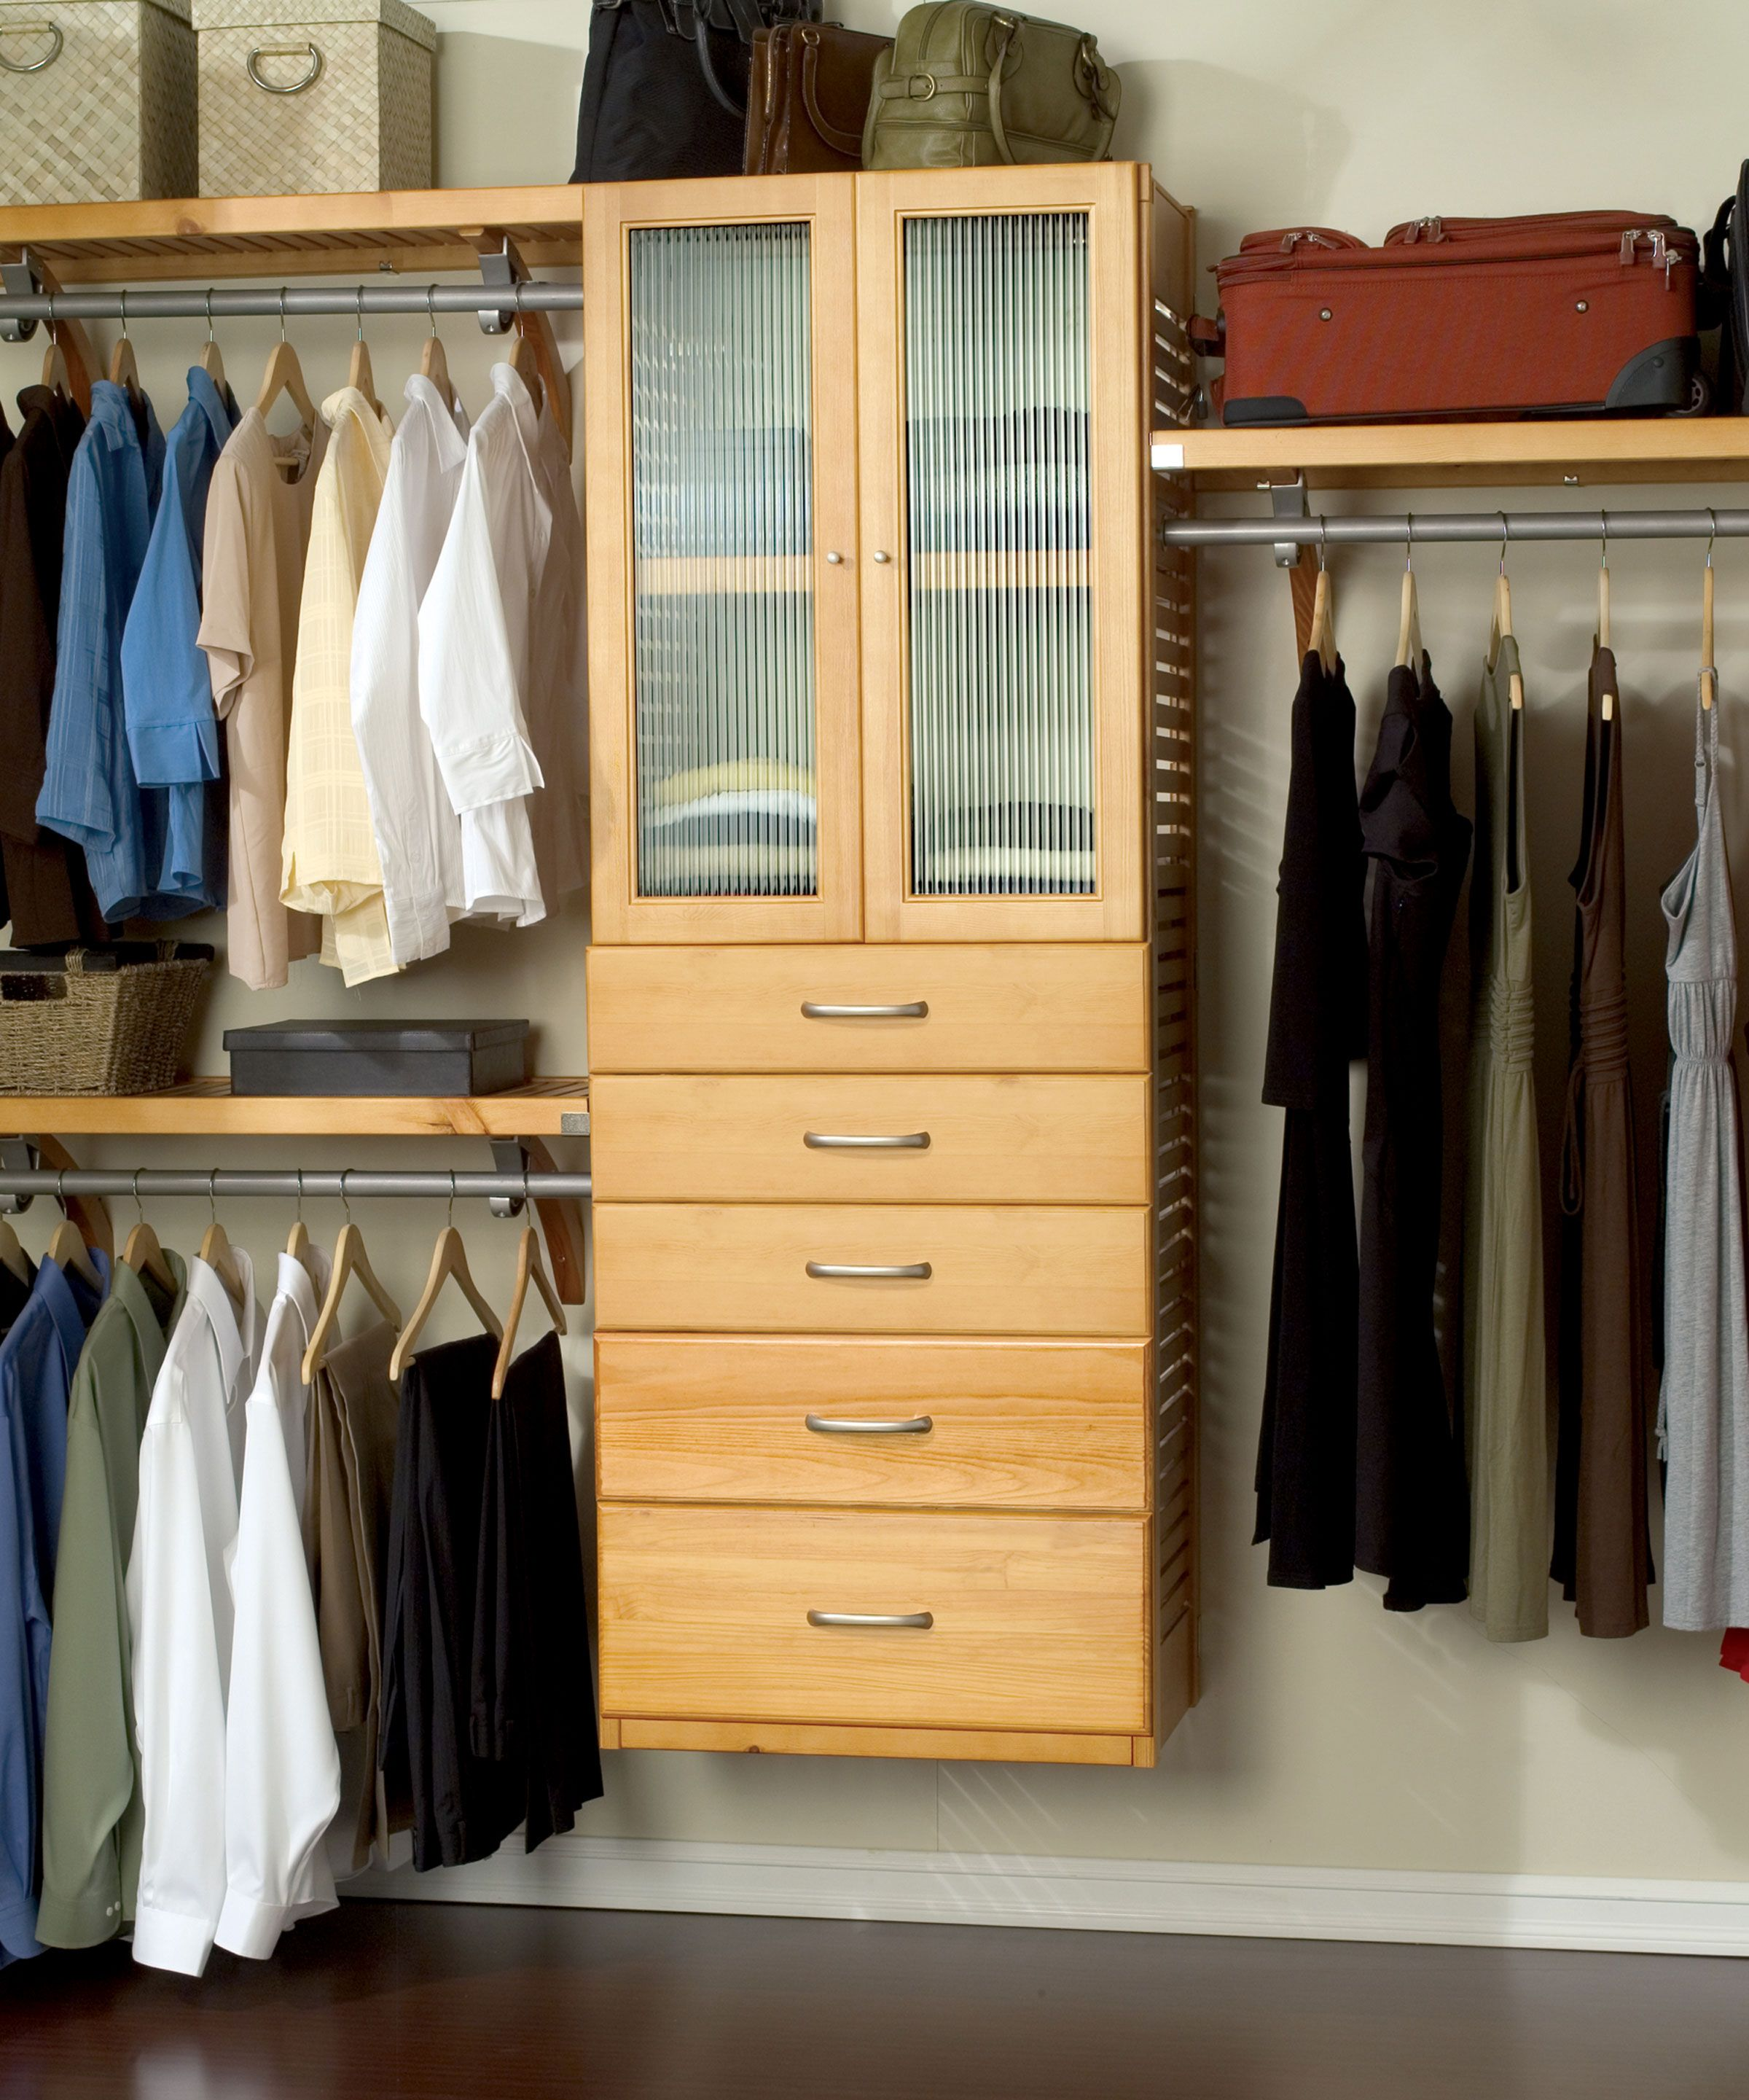 48 closet organizer | Custom Closet and Organization Services ...